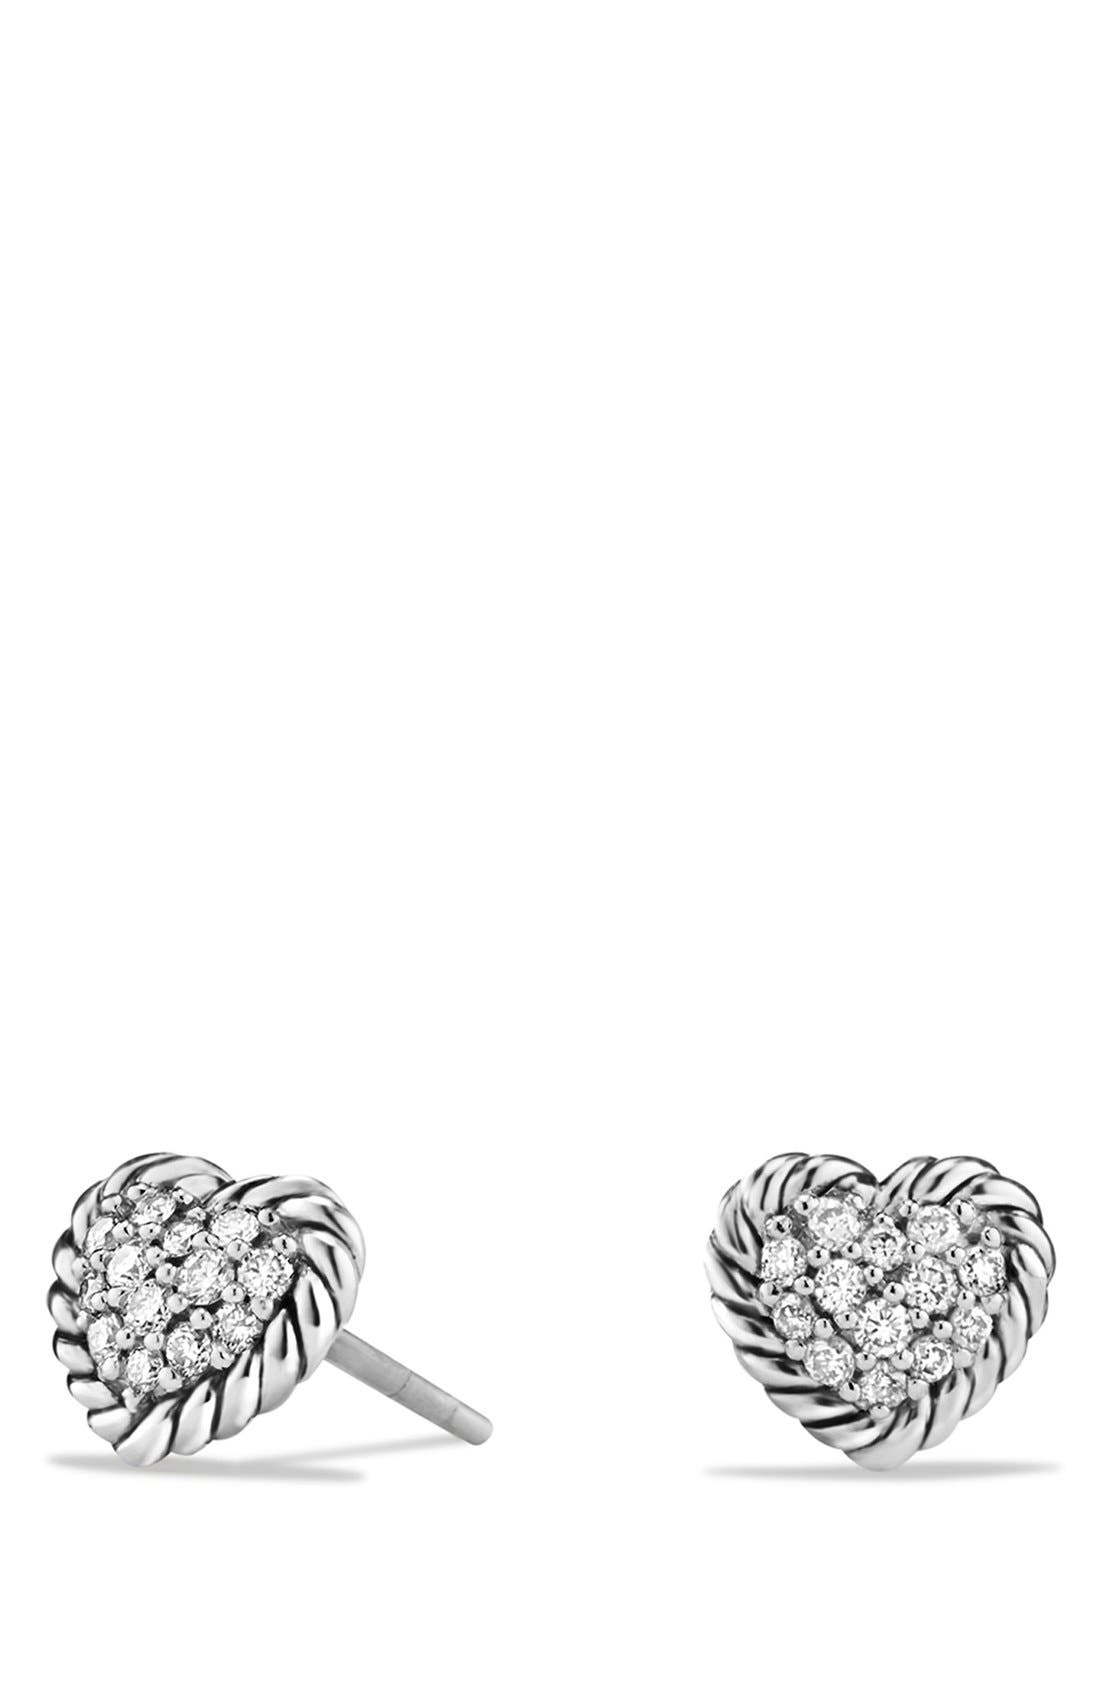 'Châtelaine' Heart Earrings with Diamonds,                         Main,                         color, Silver